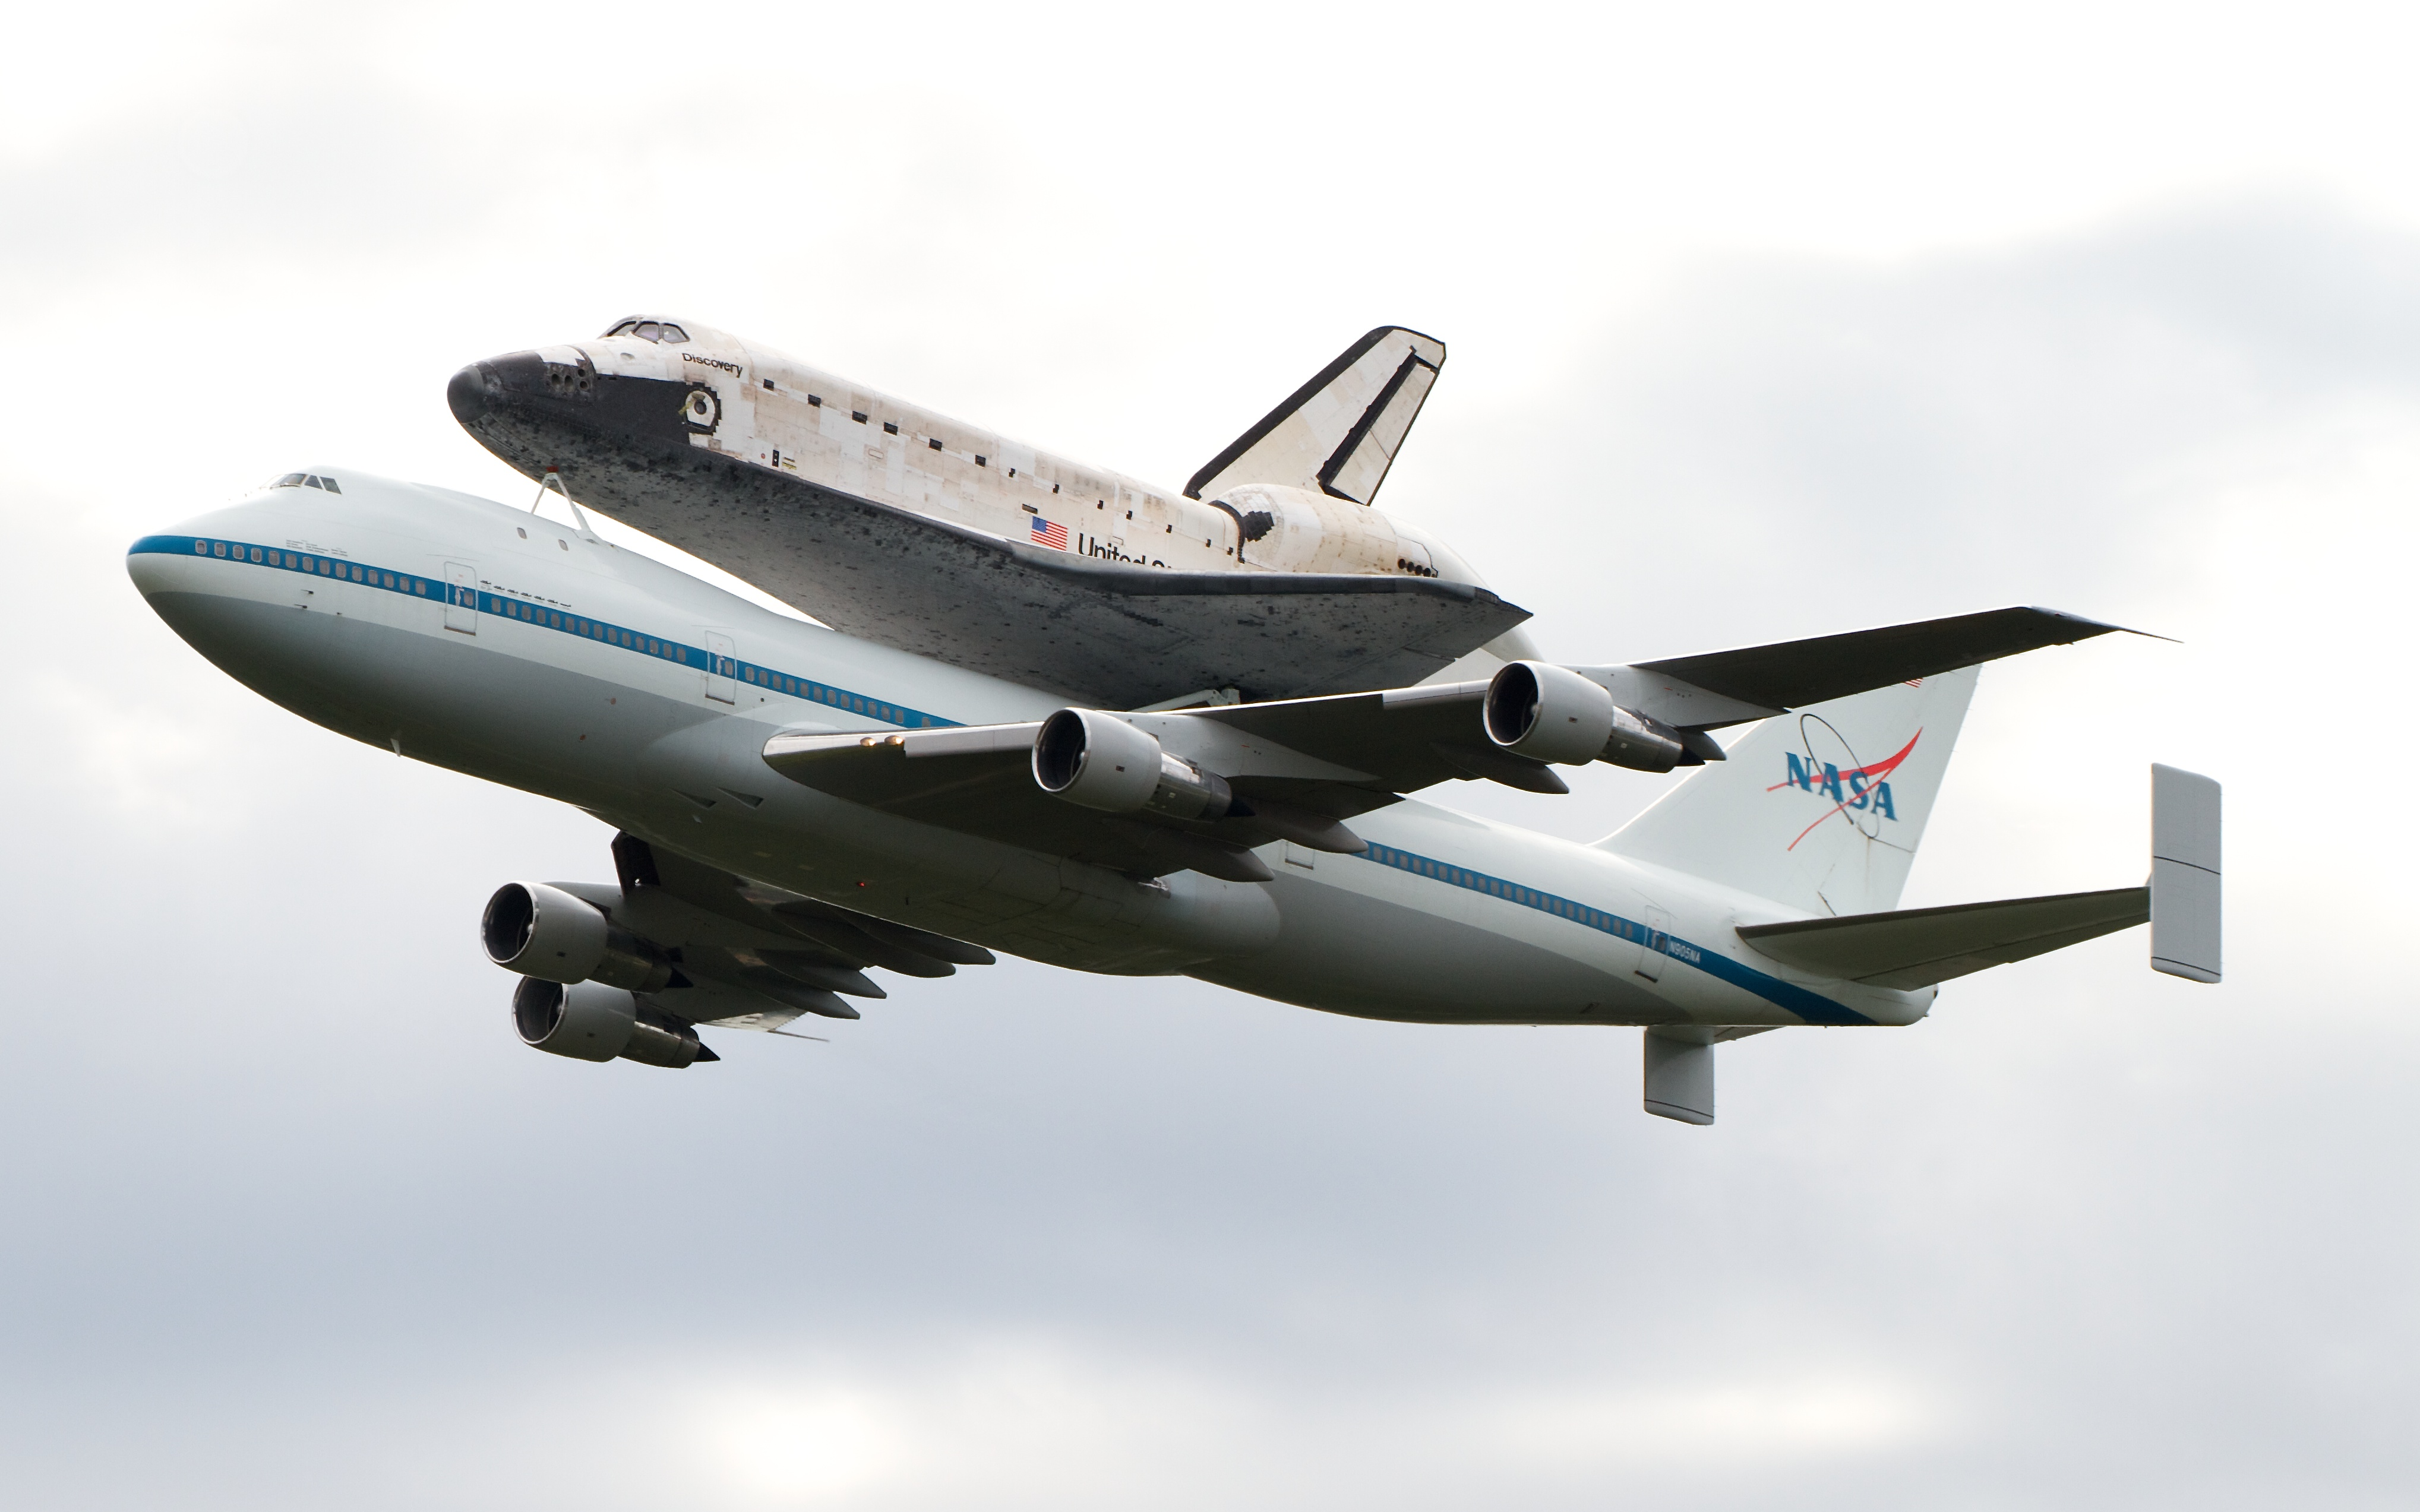 space shuttle flying - photo #26